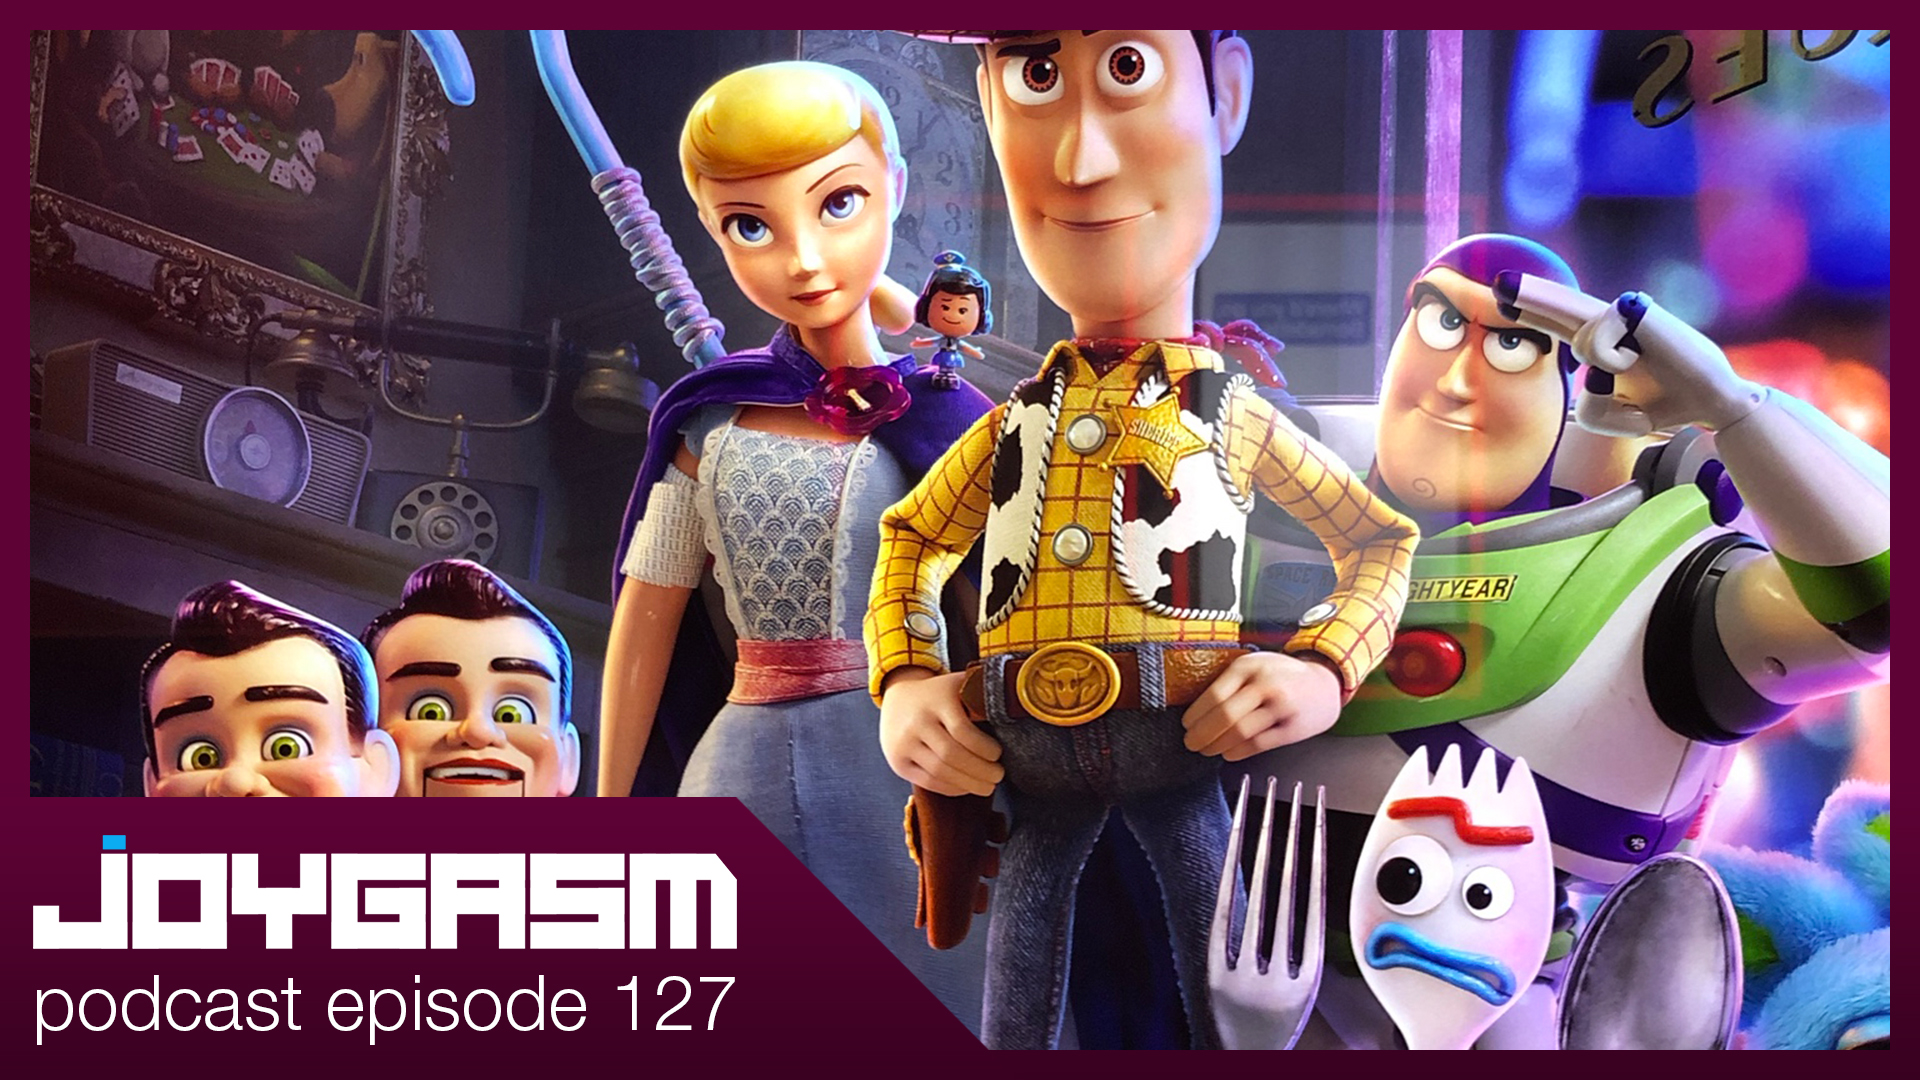 Ep. 127: Toy Story 4 Movie Review